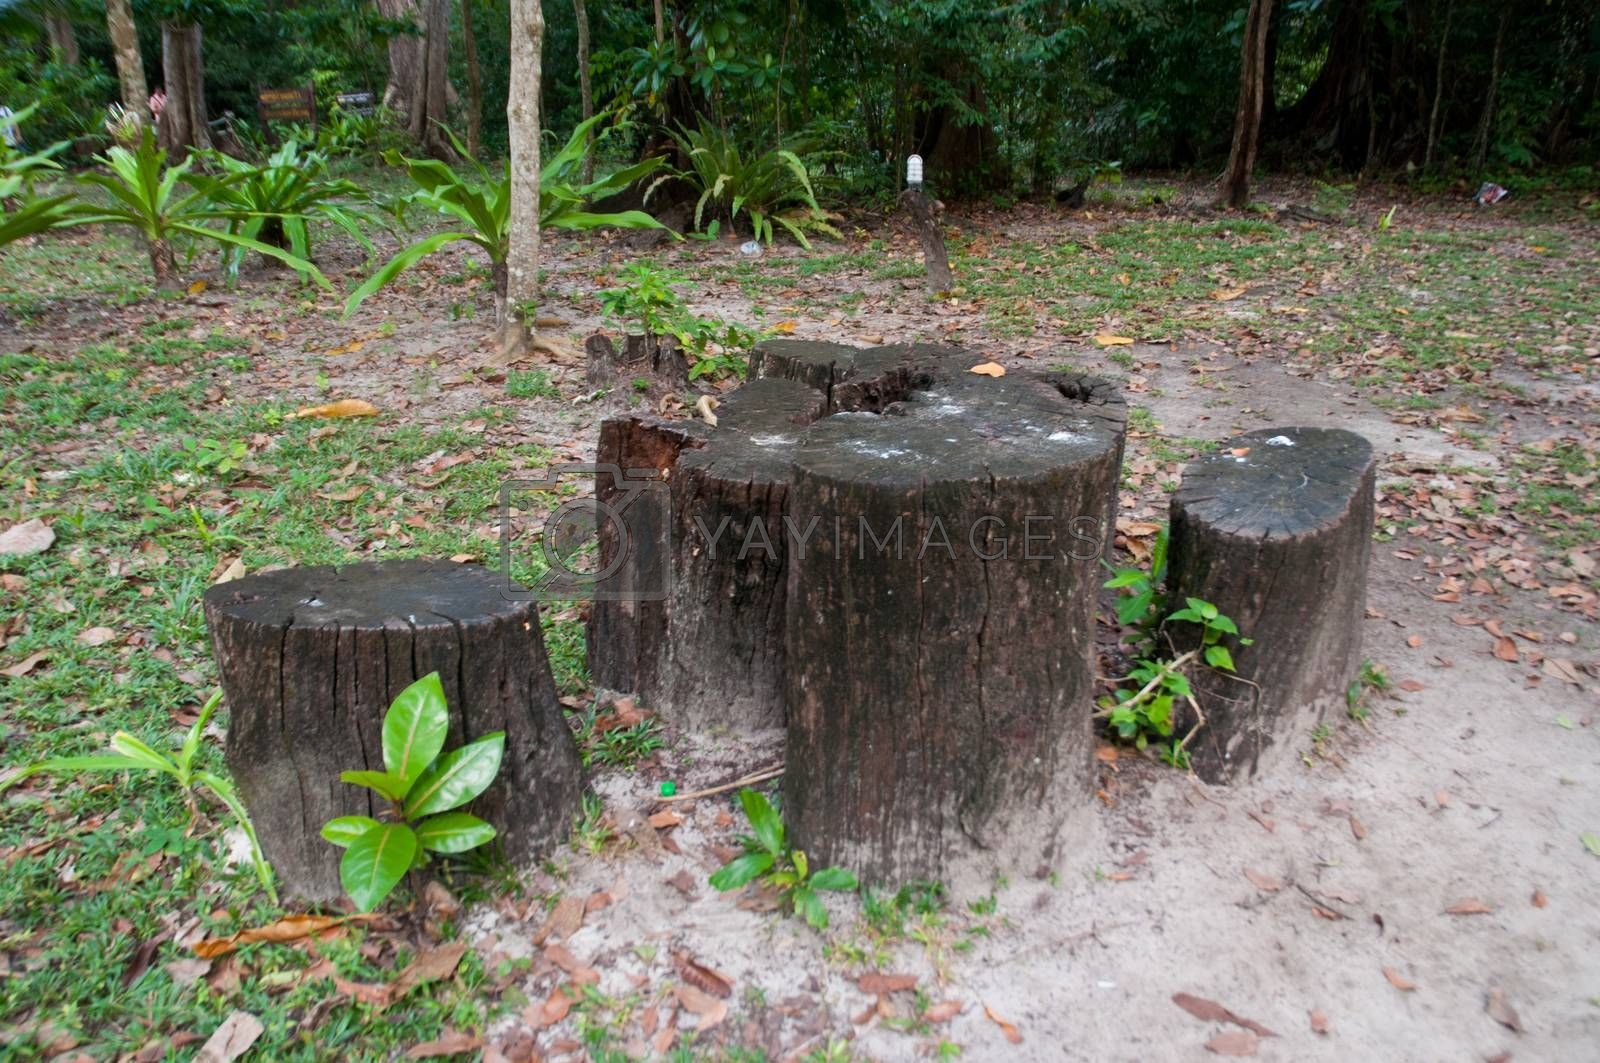 Royalty free image of the natural chair made from log on park by pandara